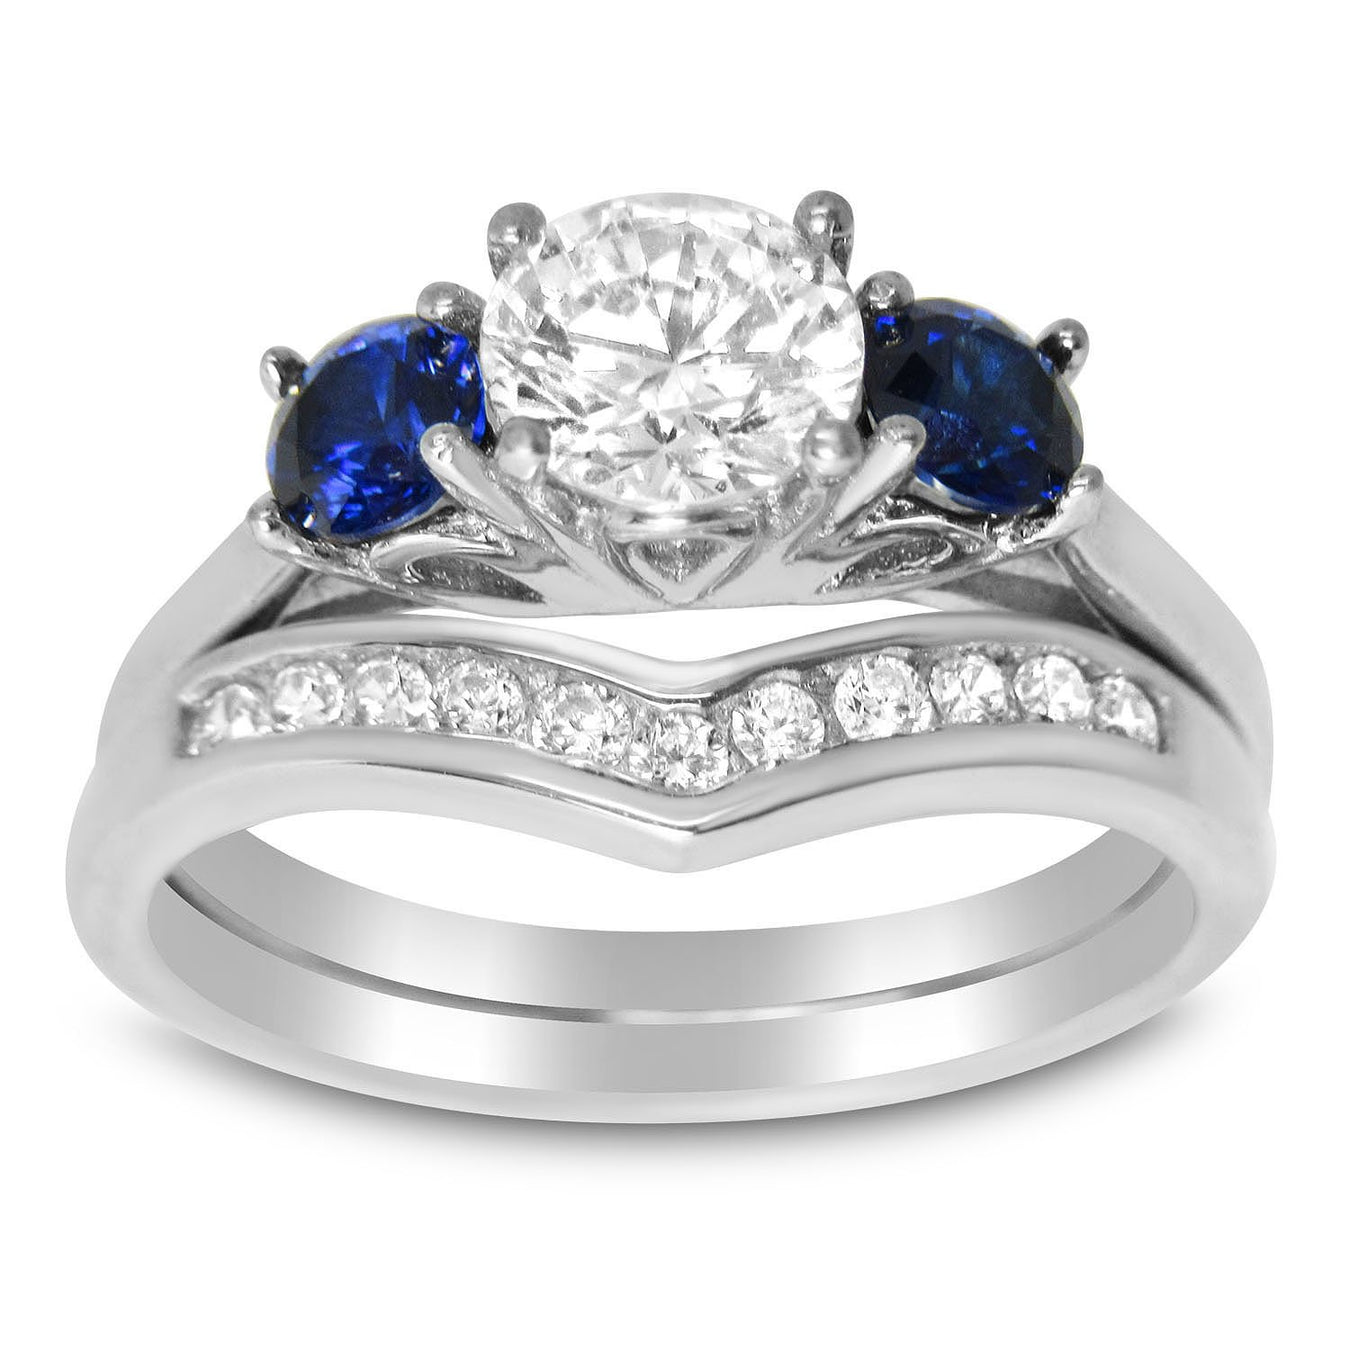 Affordable CZ Wedding Ring Sets That Look Real